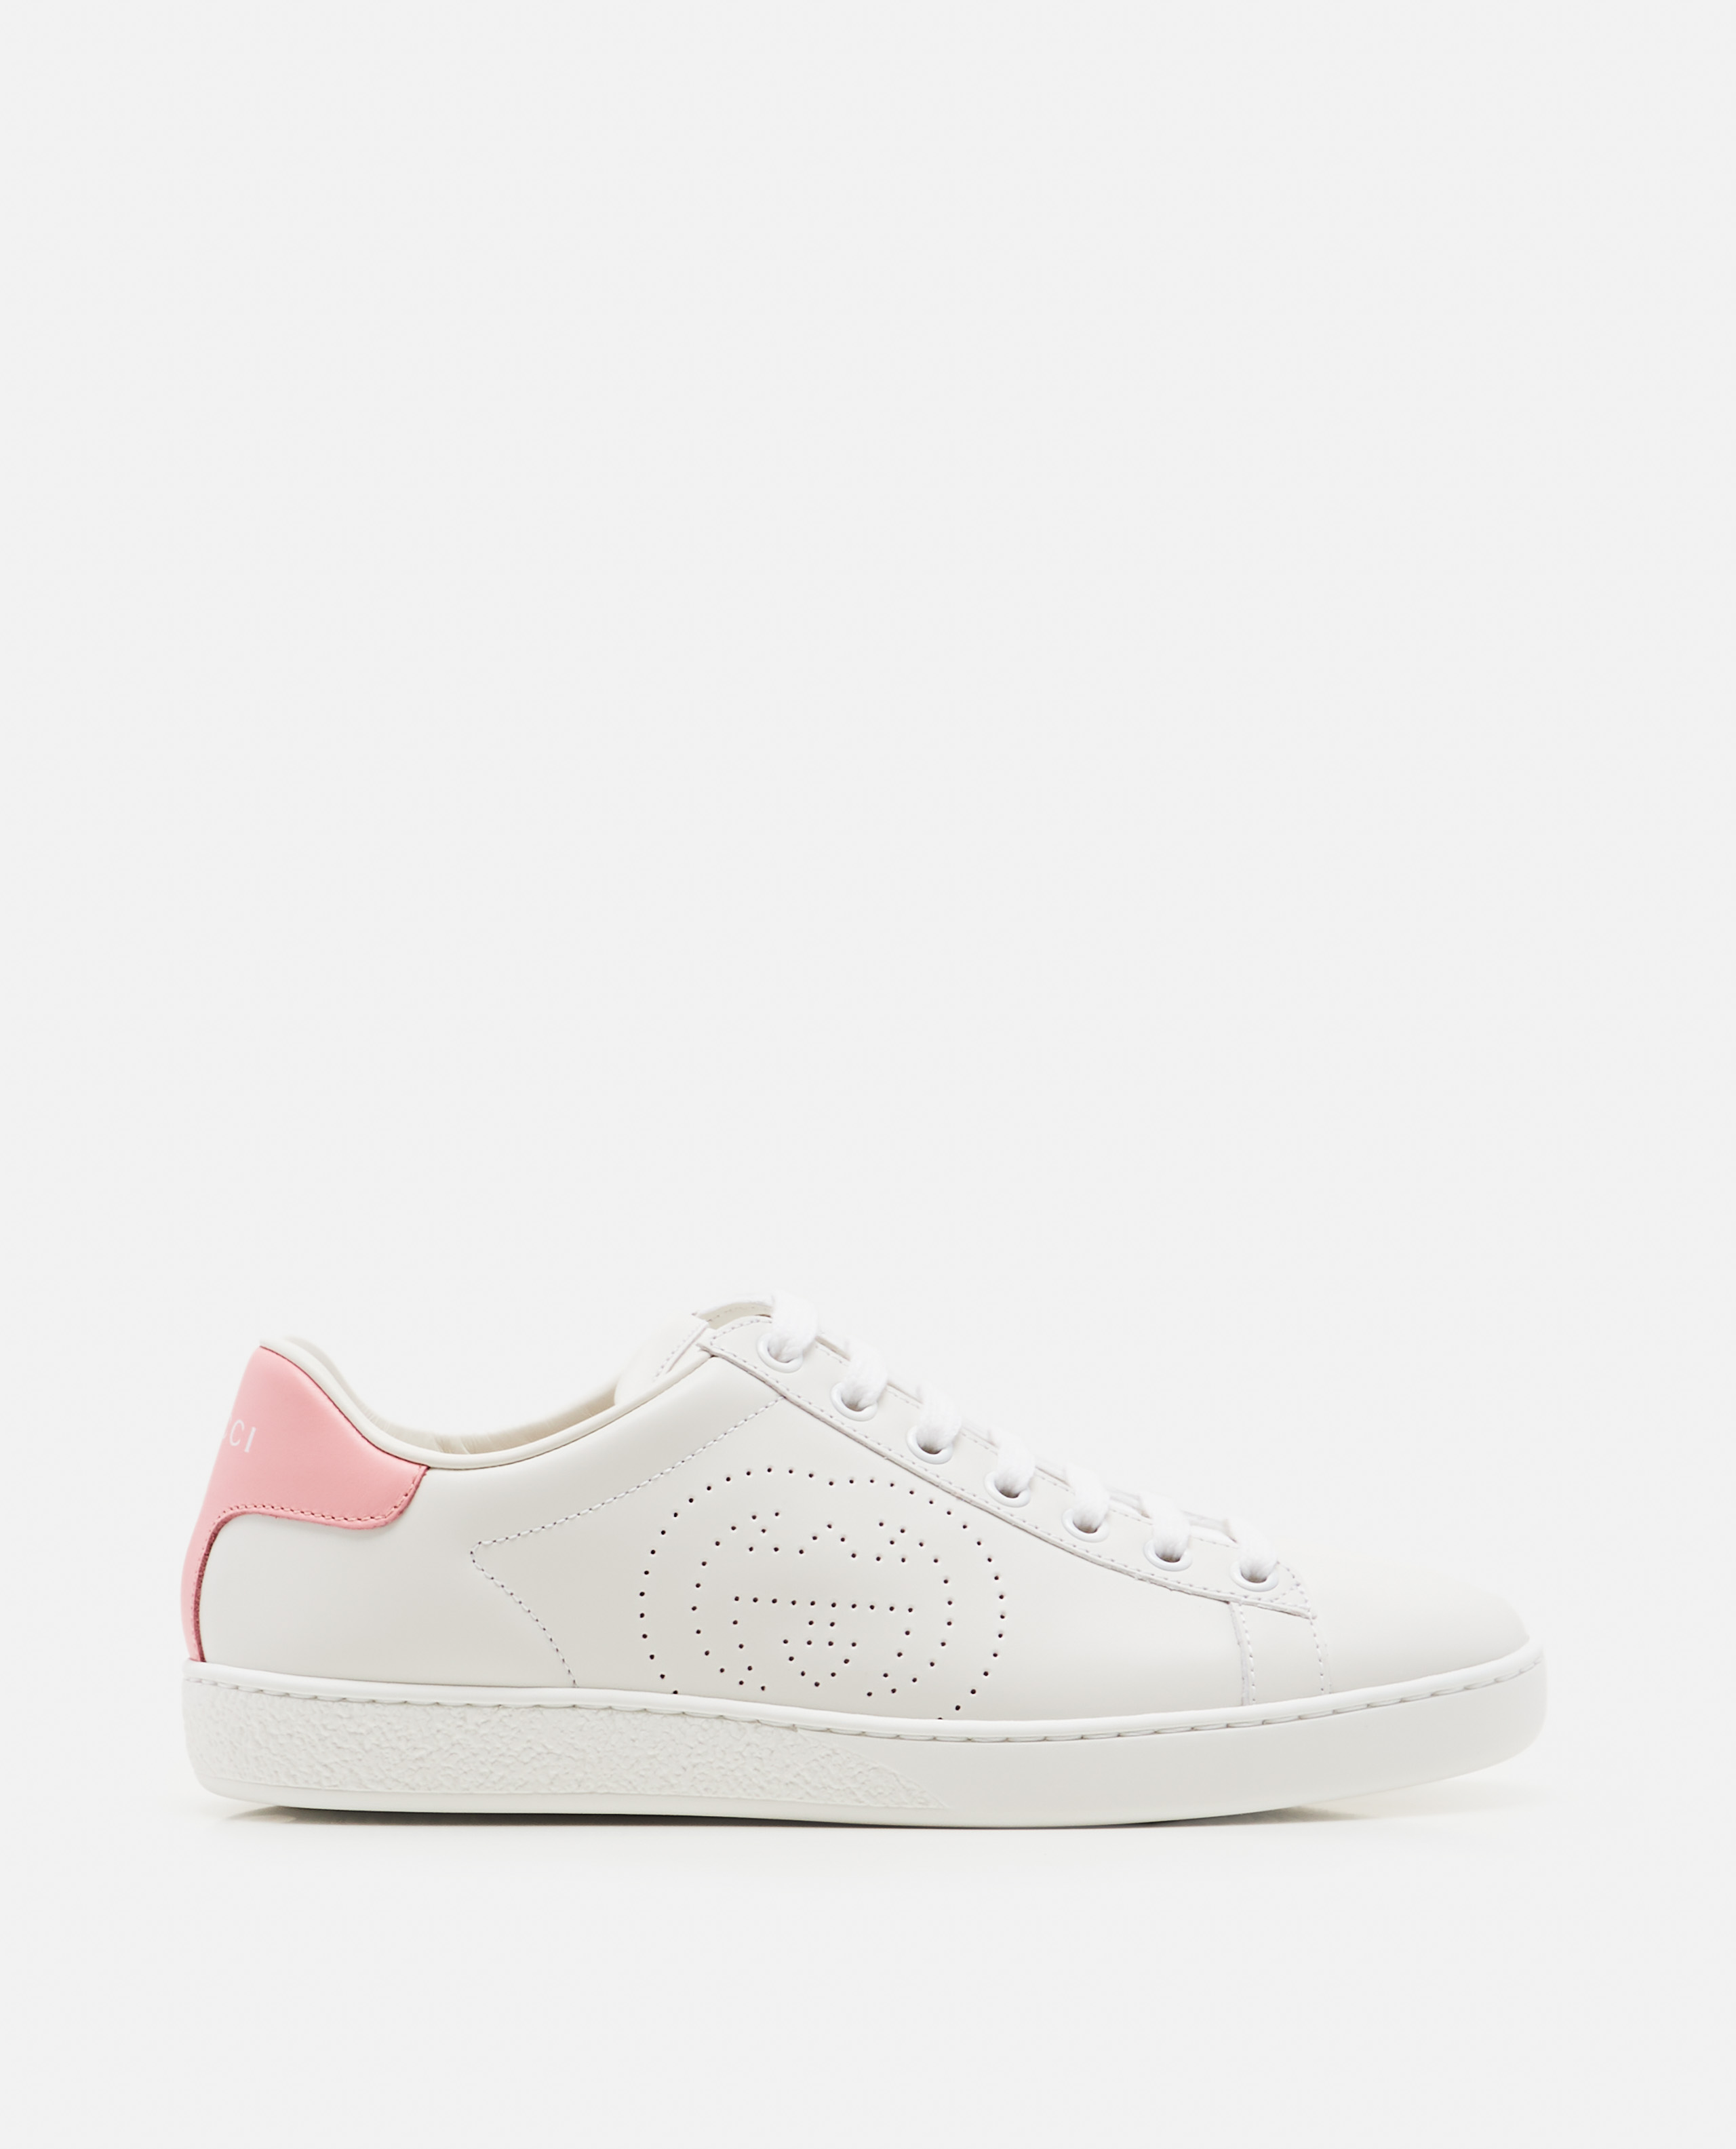 Ace womens sneaker with GG